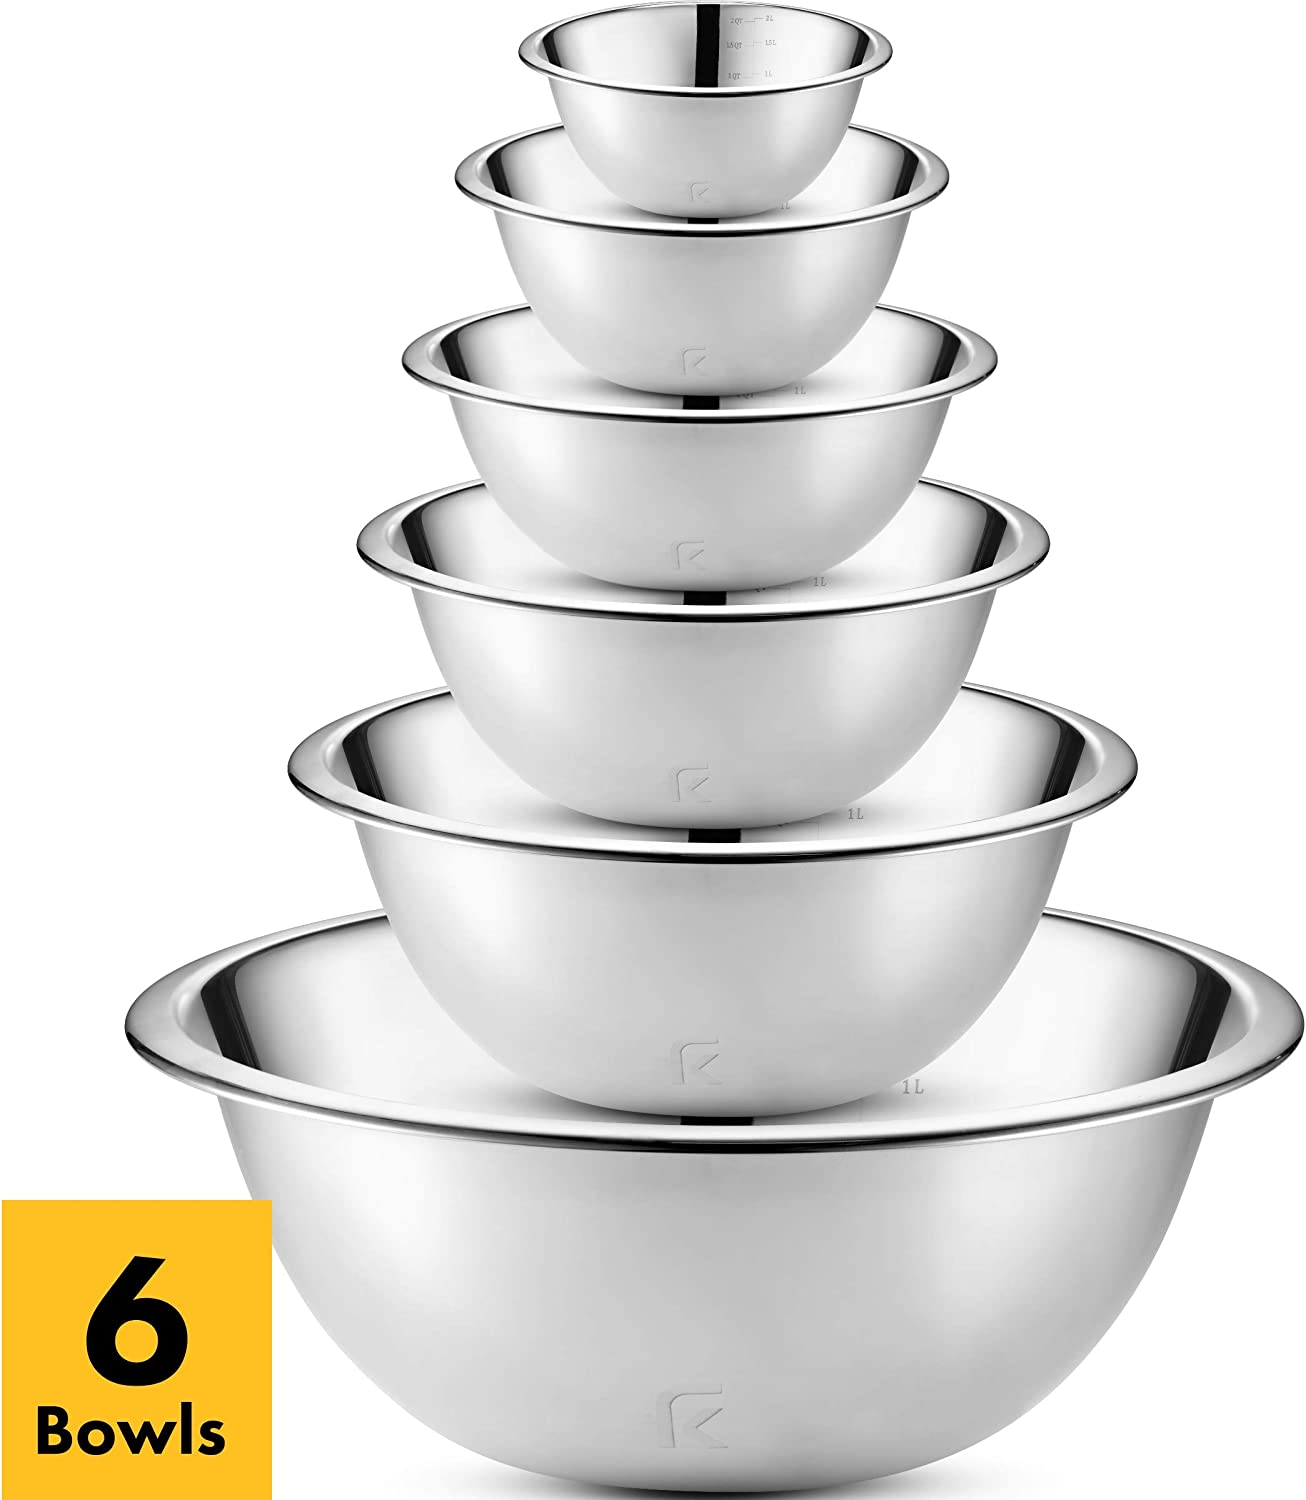 Klee 6-Piece Premium Stainless Steel Mixing Bowls with Measurements (Set of 6)